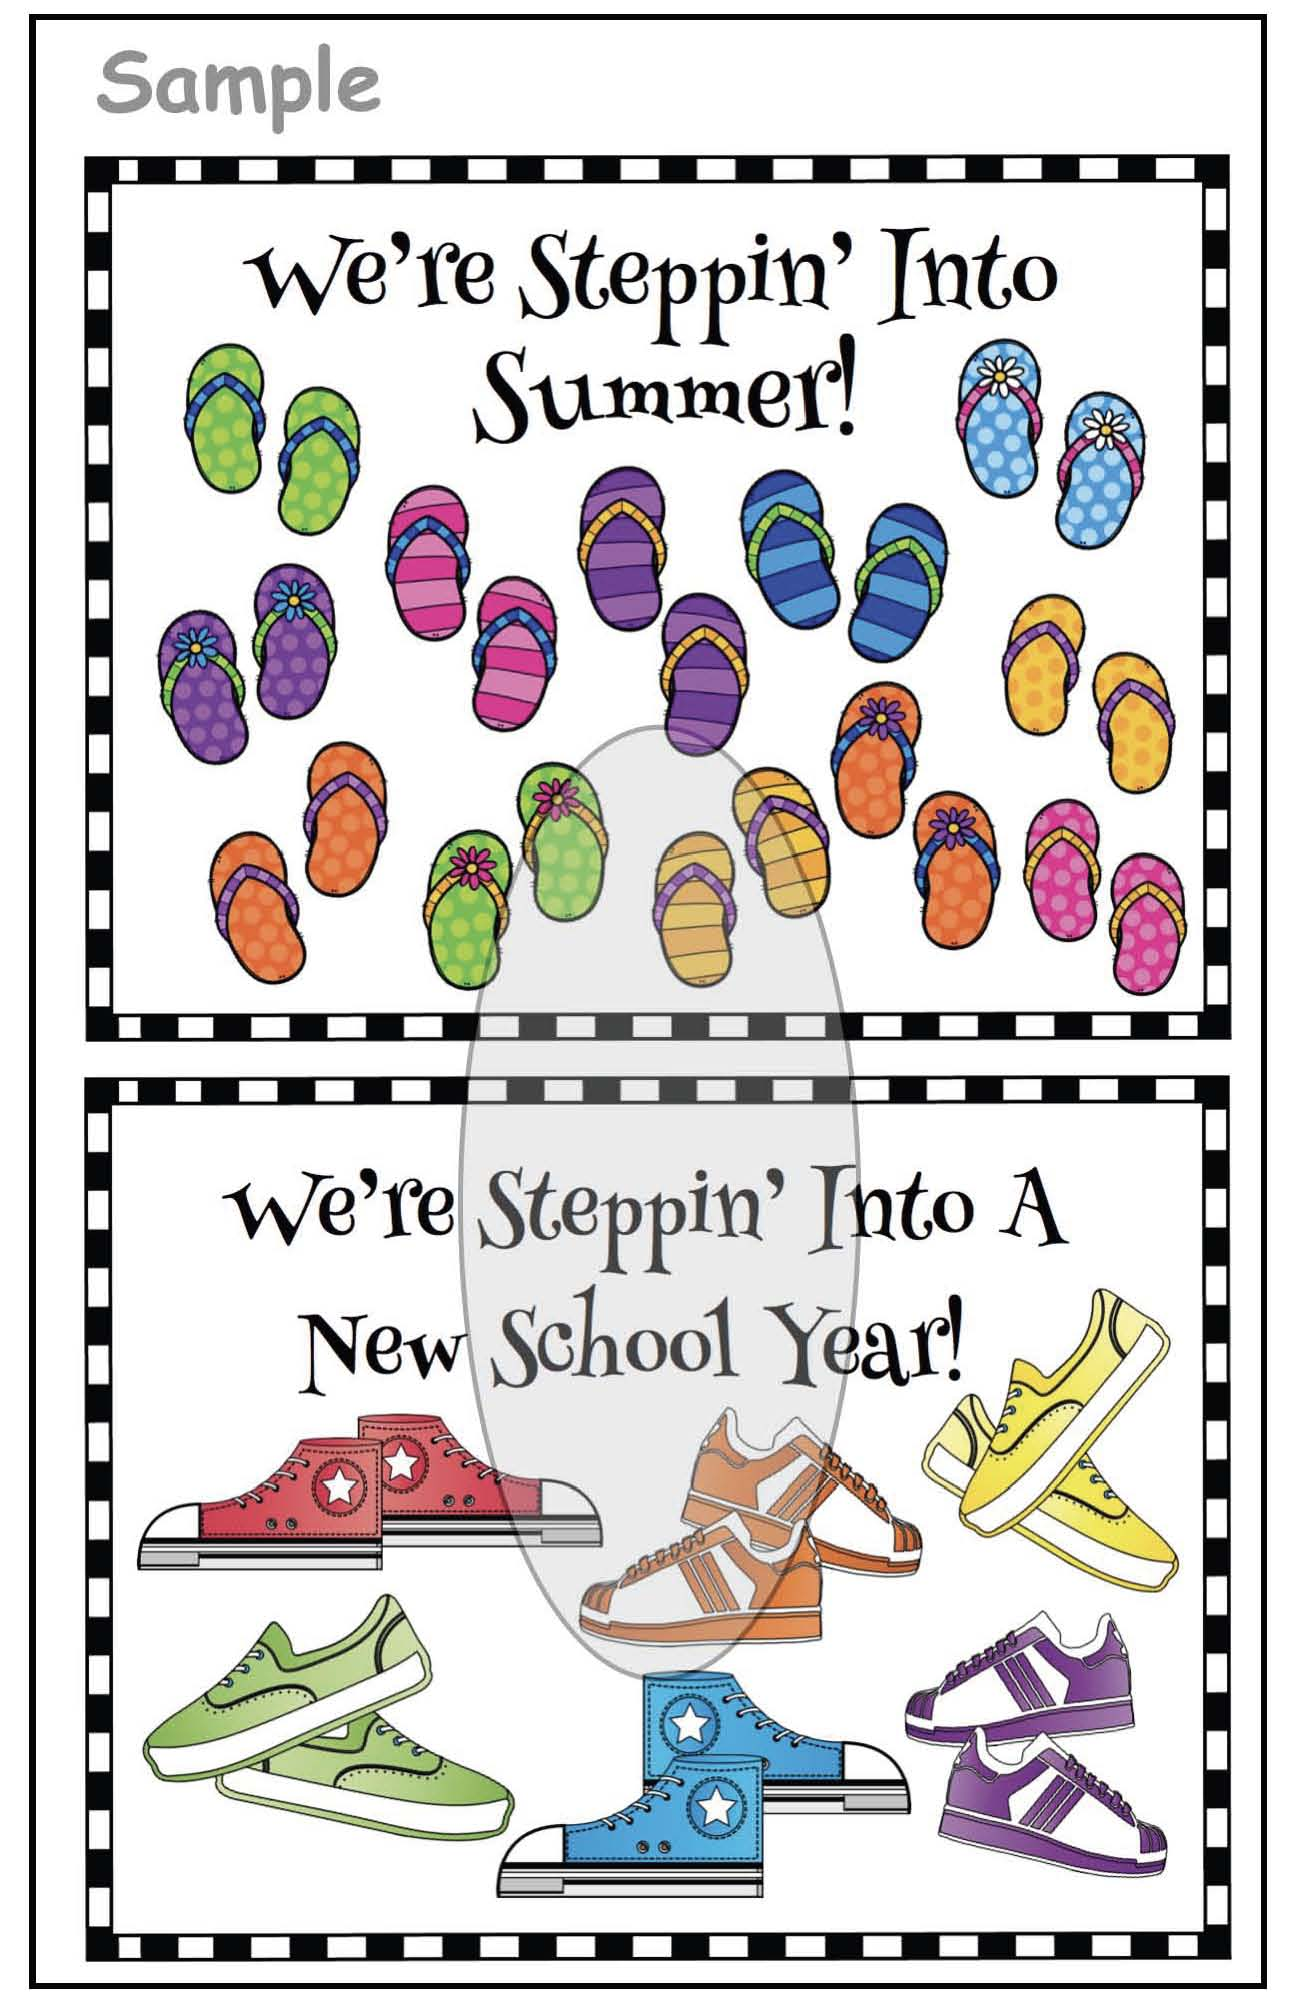 writing prompts for the end of the year,  end of the year bulletin boards, summer writing prompts, summer bulletin boards, activities for the end of the year, back to school writing prompts, back to school crafts, back to school bulletin boards, Pete the cat activities, Petes I love my white shoes crafts, Petes i love my white shoes activities